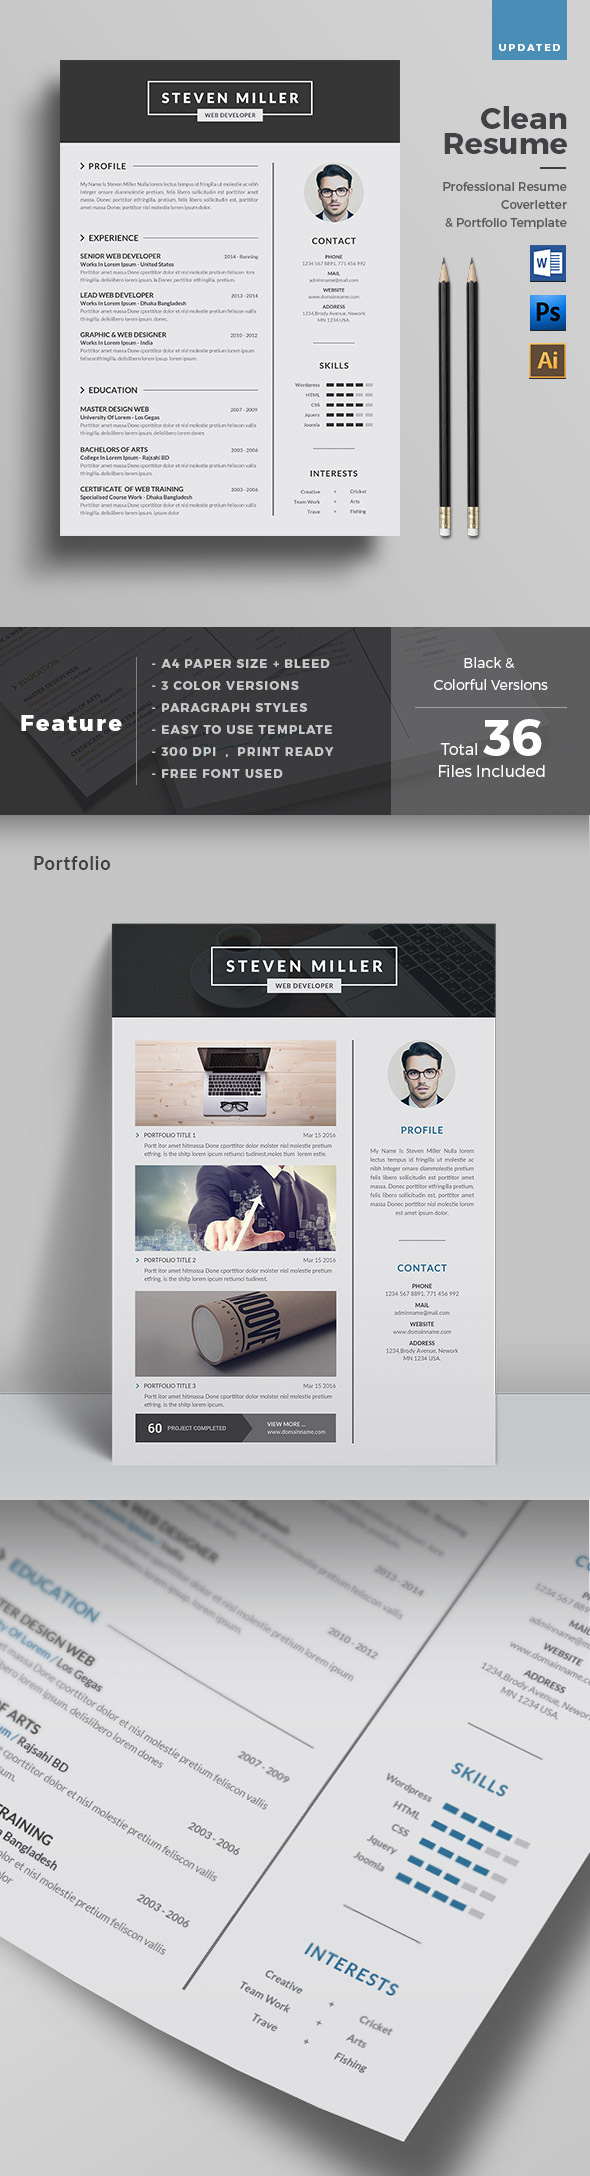 25+ creative resume templates: to land a new job in style